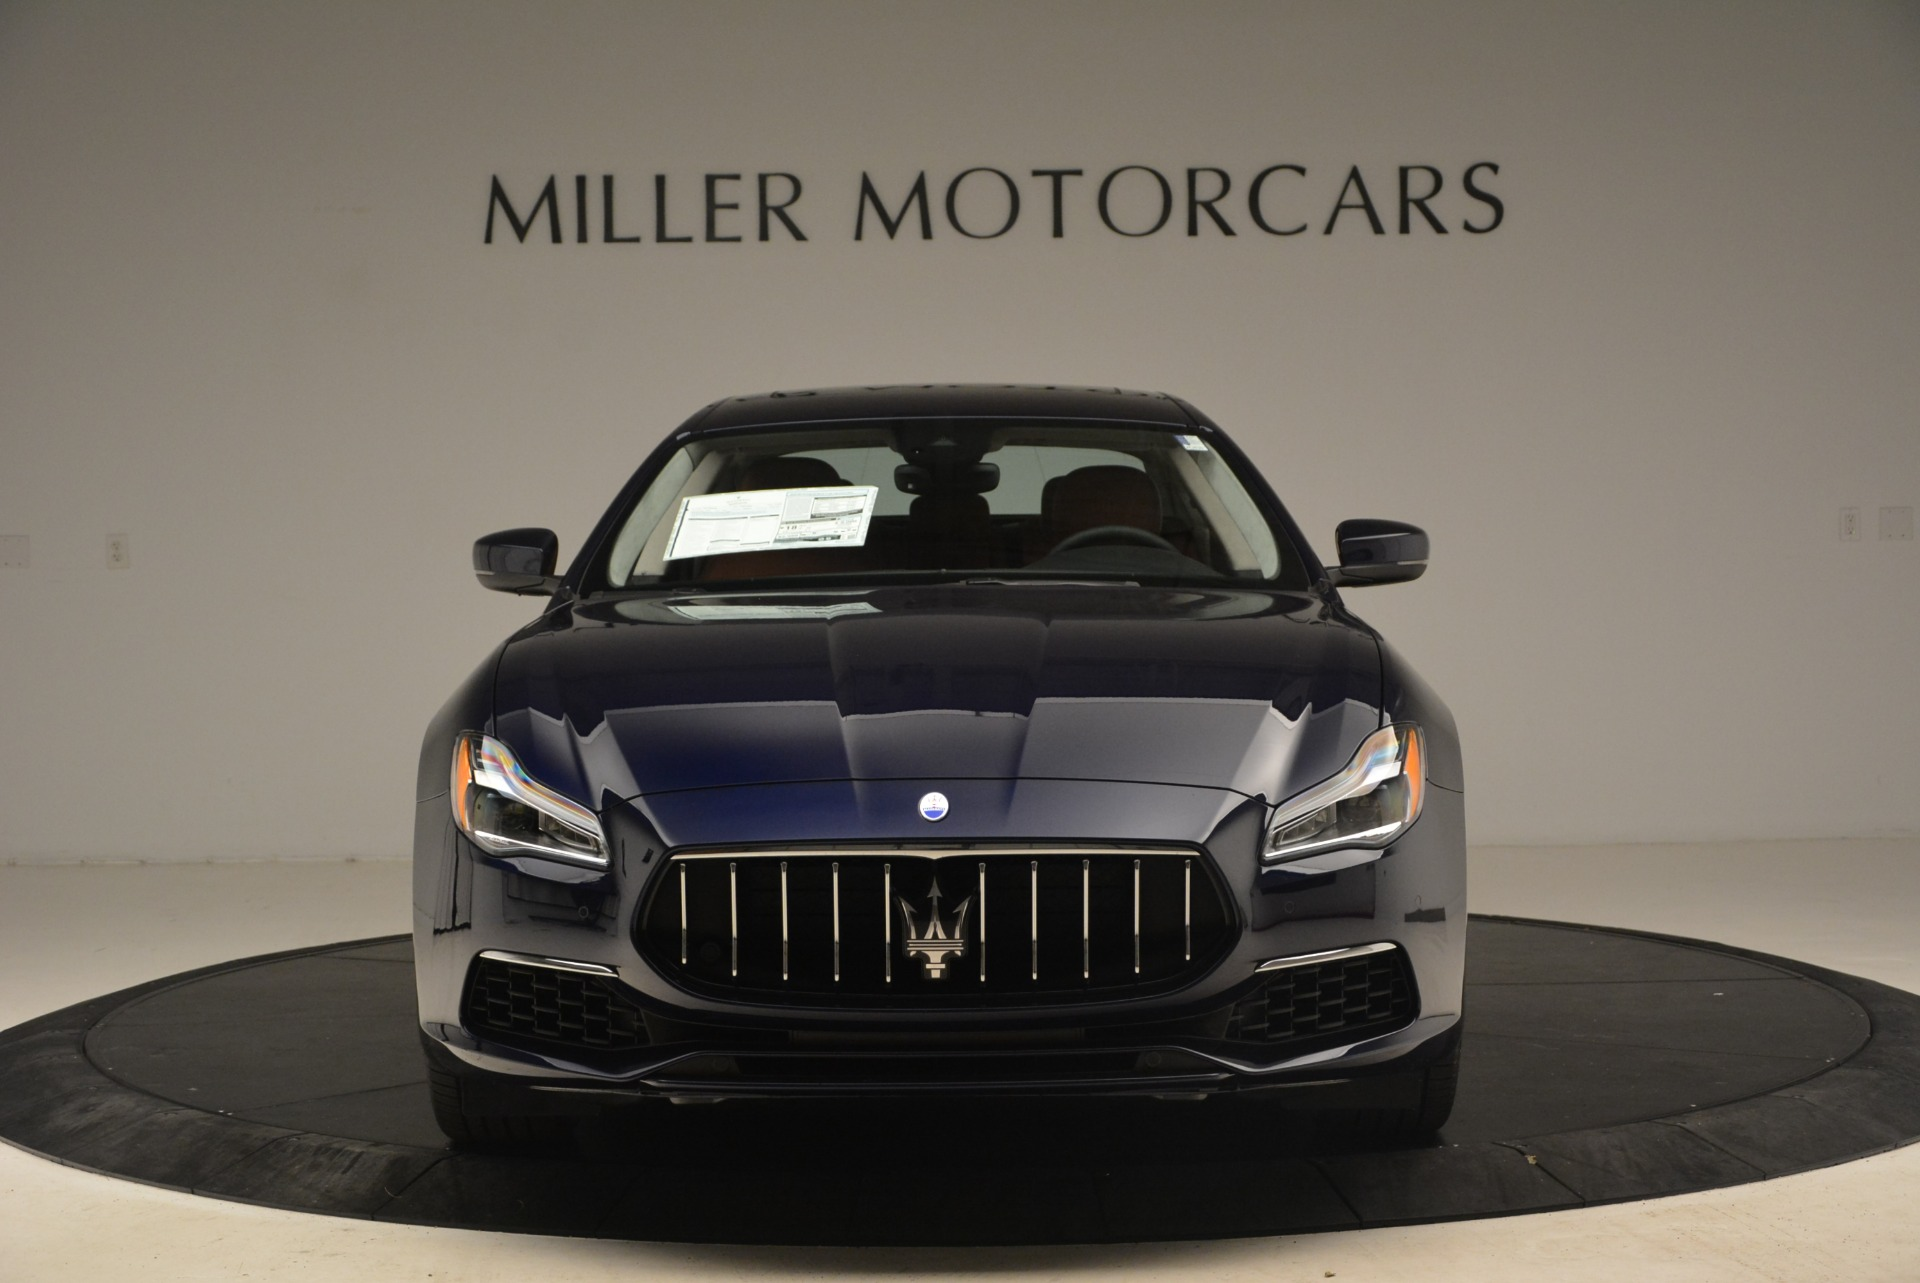 New 2019 Maserati Quattroporte S Q4 GranLusso For Sale In Greenwich, CT 2767_p12